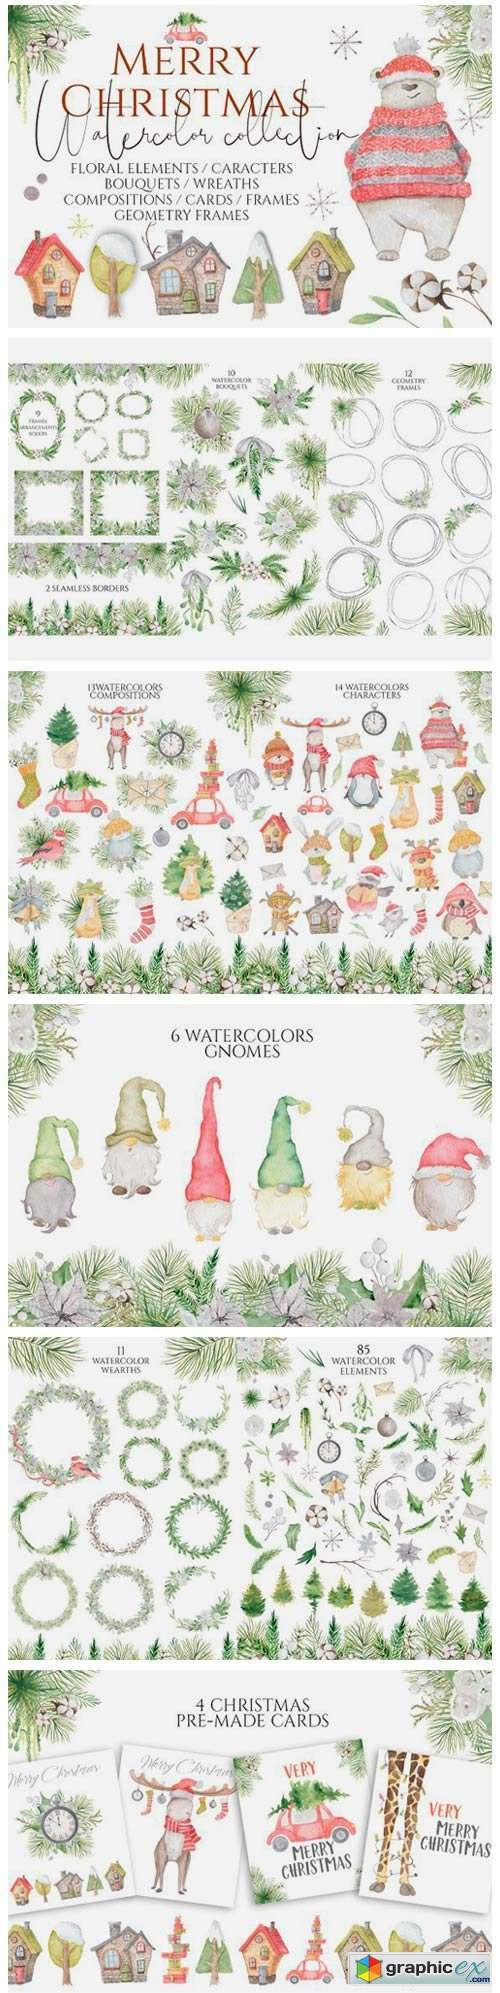 Christmas Watercolor Characters